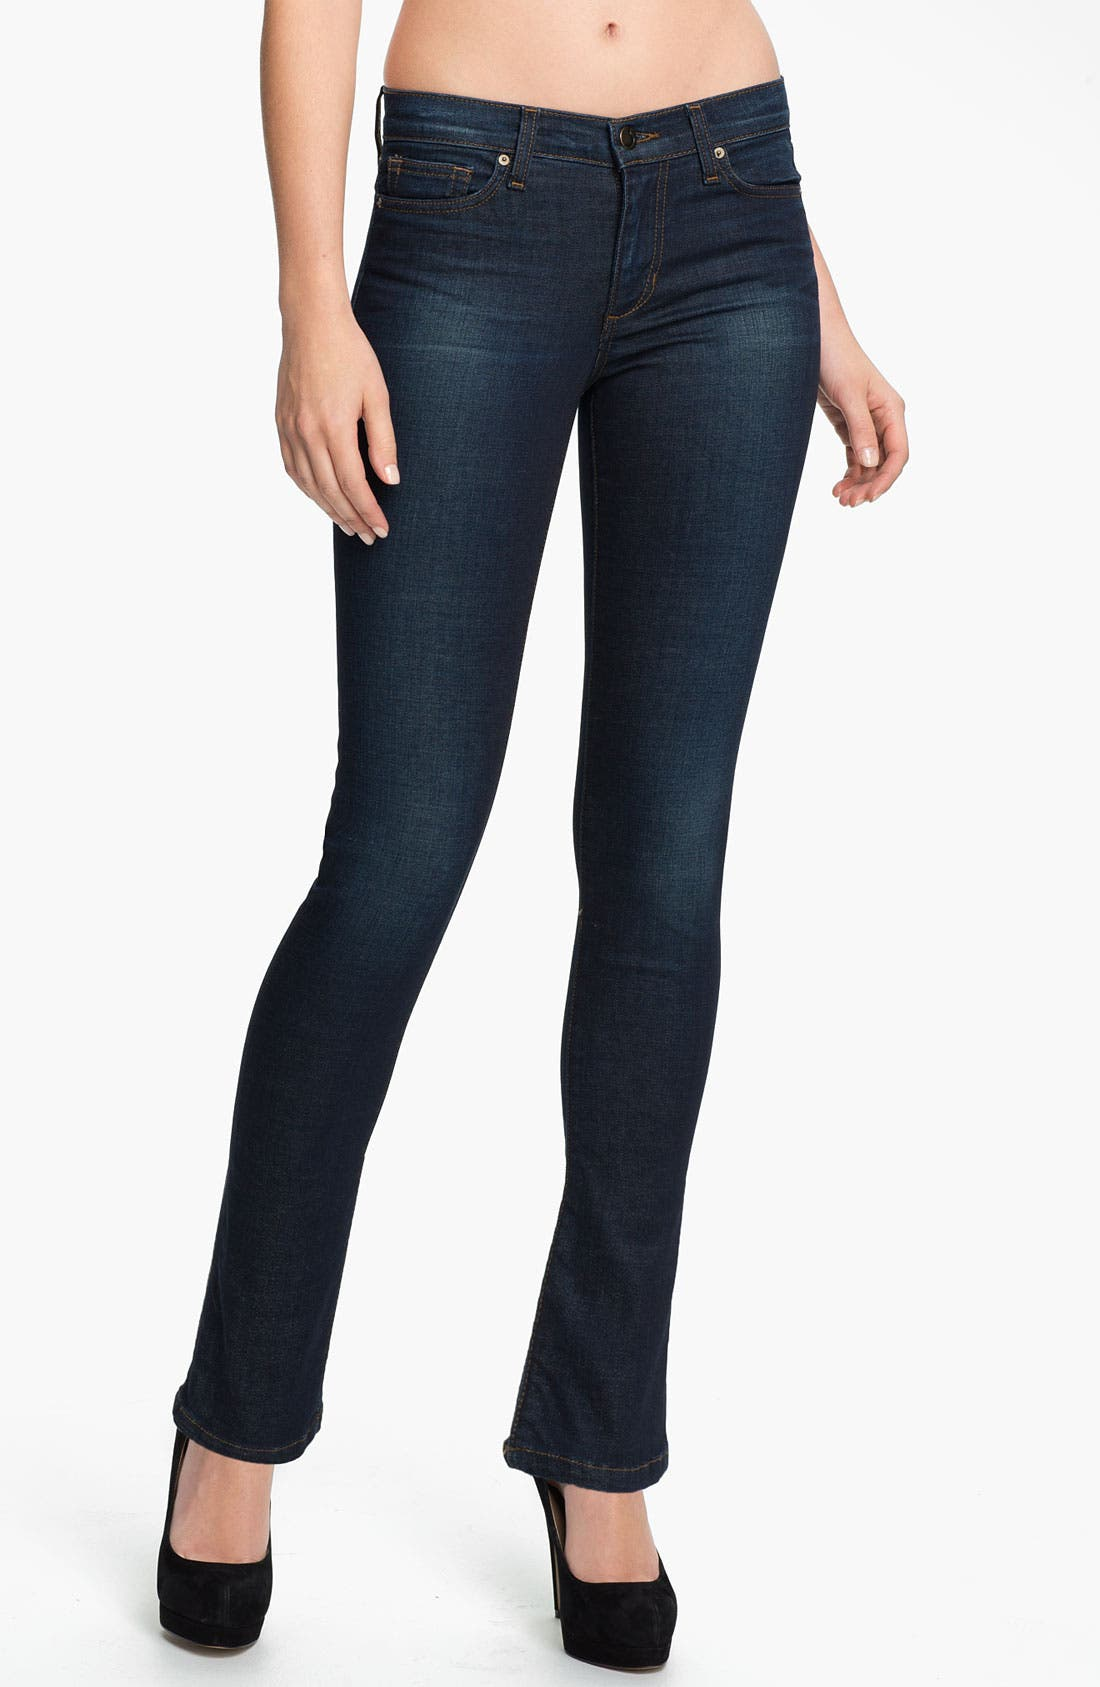 Main Image - Joe's Straight Leg Stretch Jeans (Arielle) (Petite)